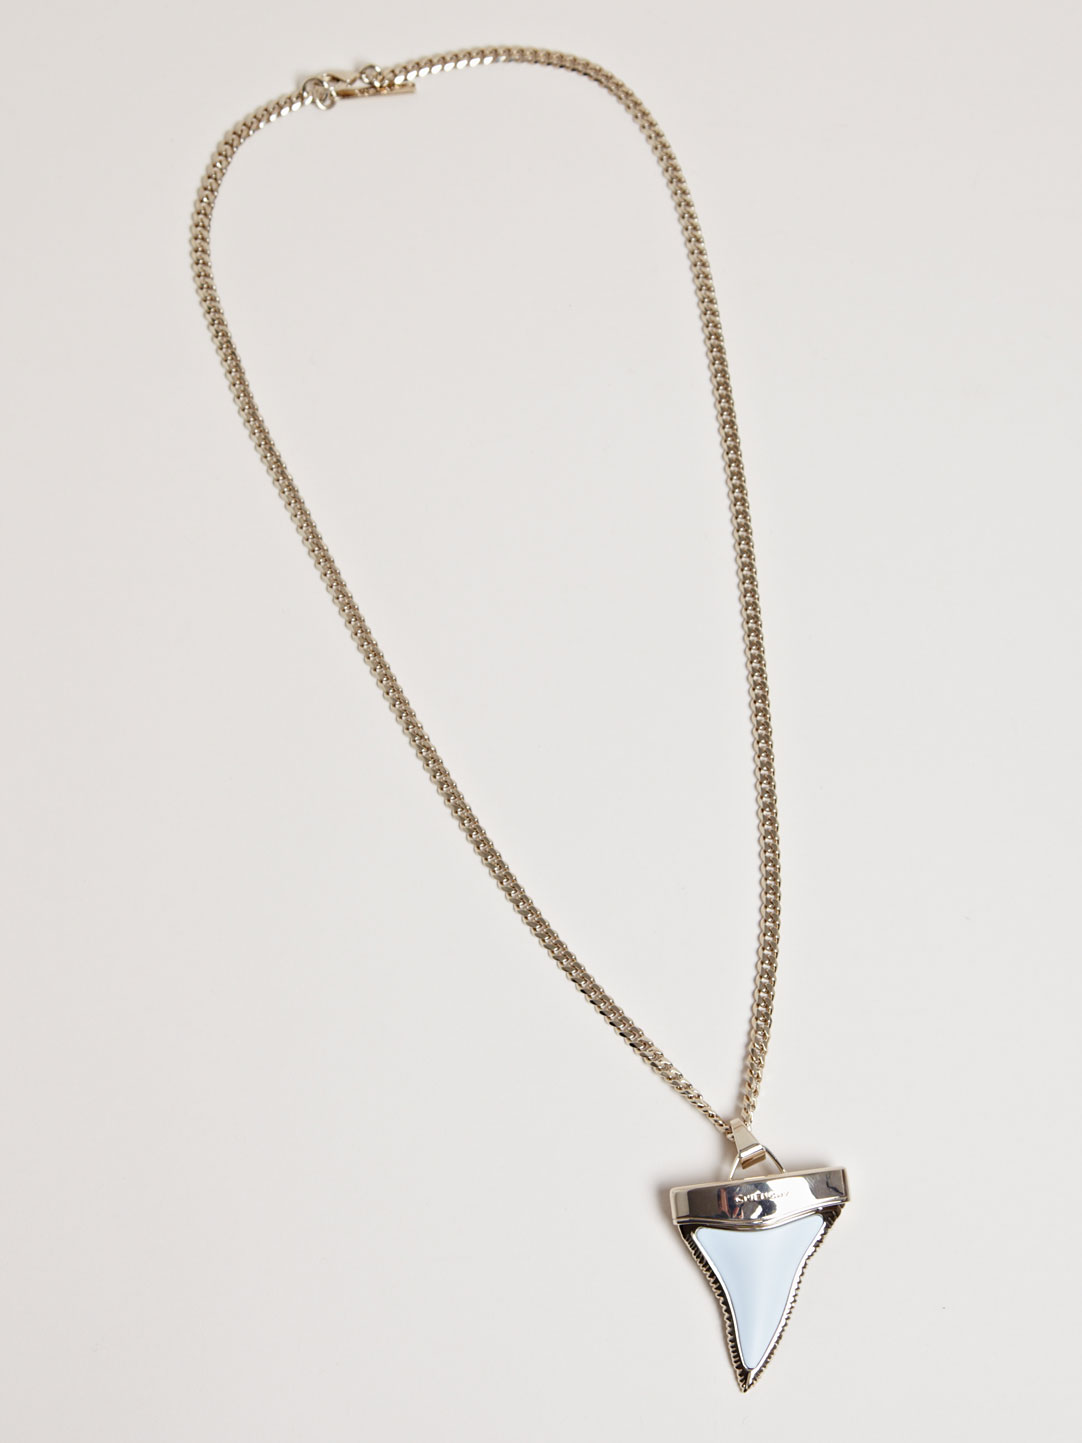 383273b263931e Givenchy Large Shark Tooth Necklace in Metallic - Lyst